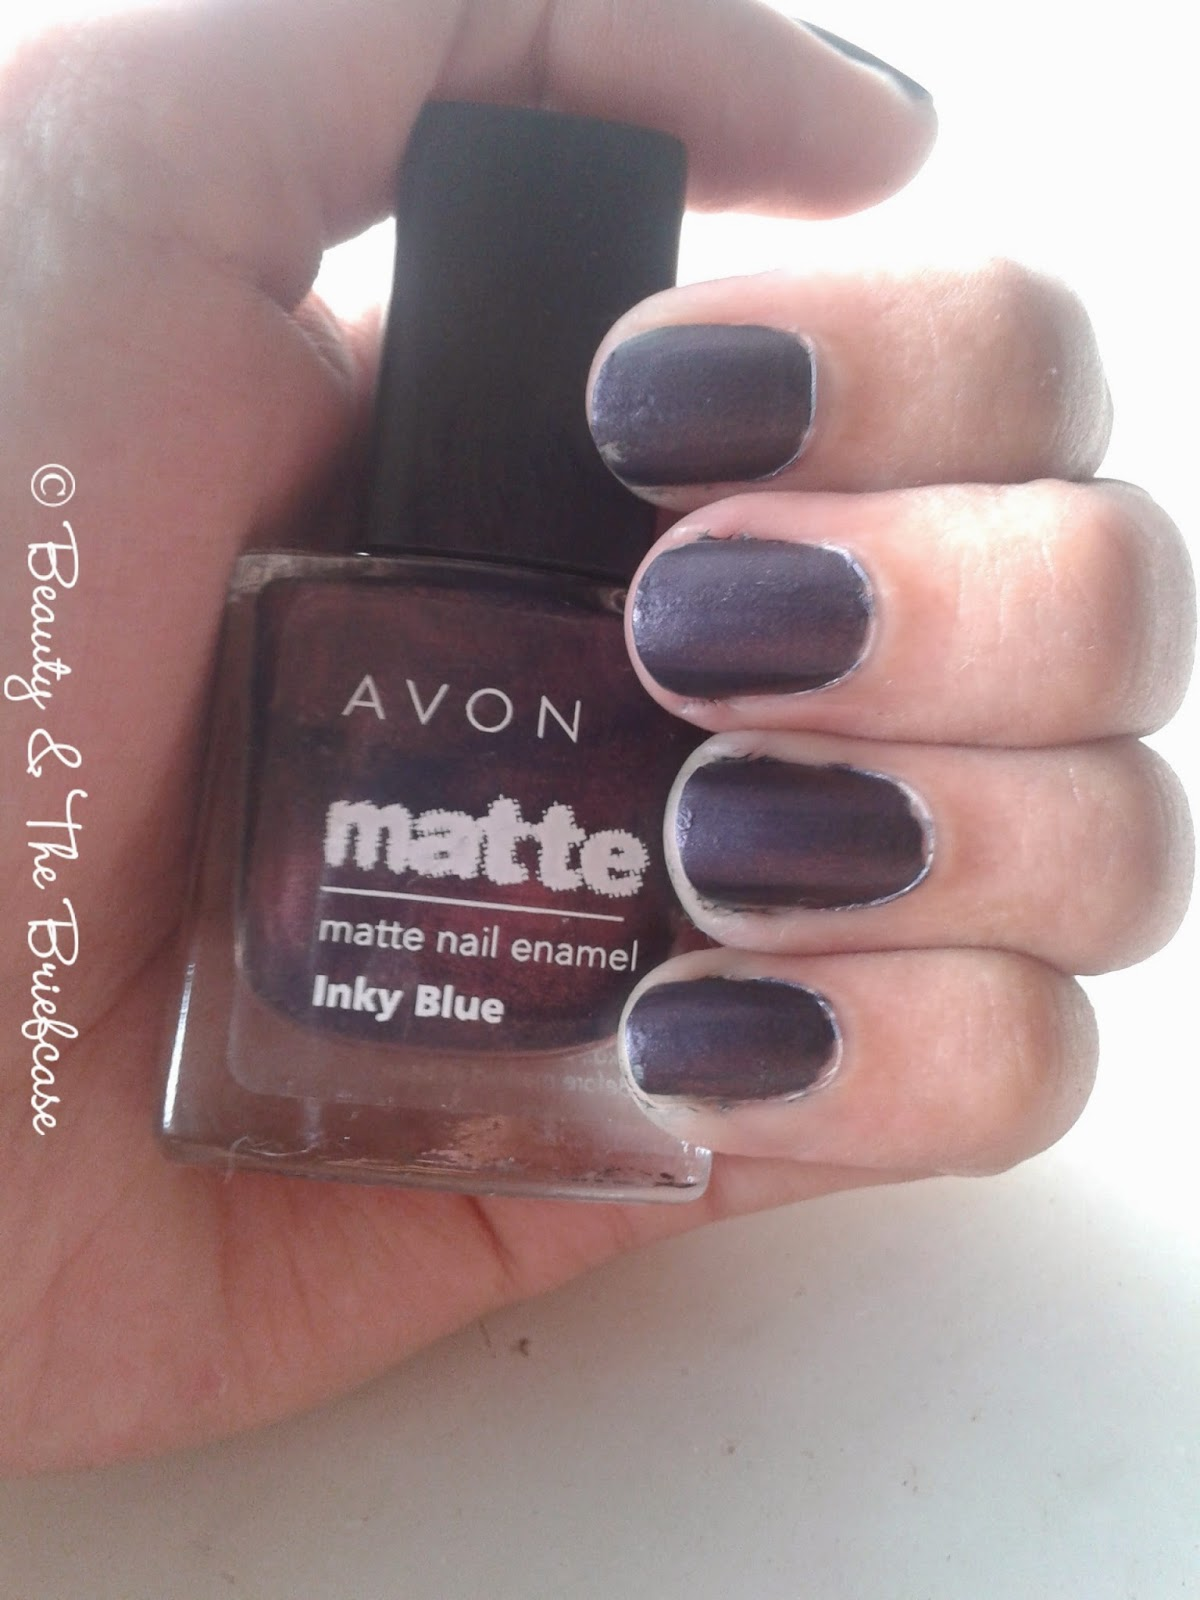 Beauty & The Briefcase: Avon Inky Blue Matte Nail Polish : Review & NOTD